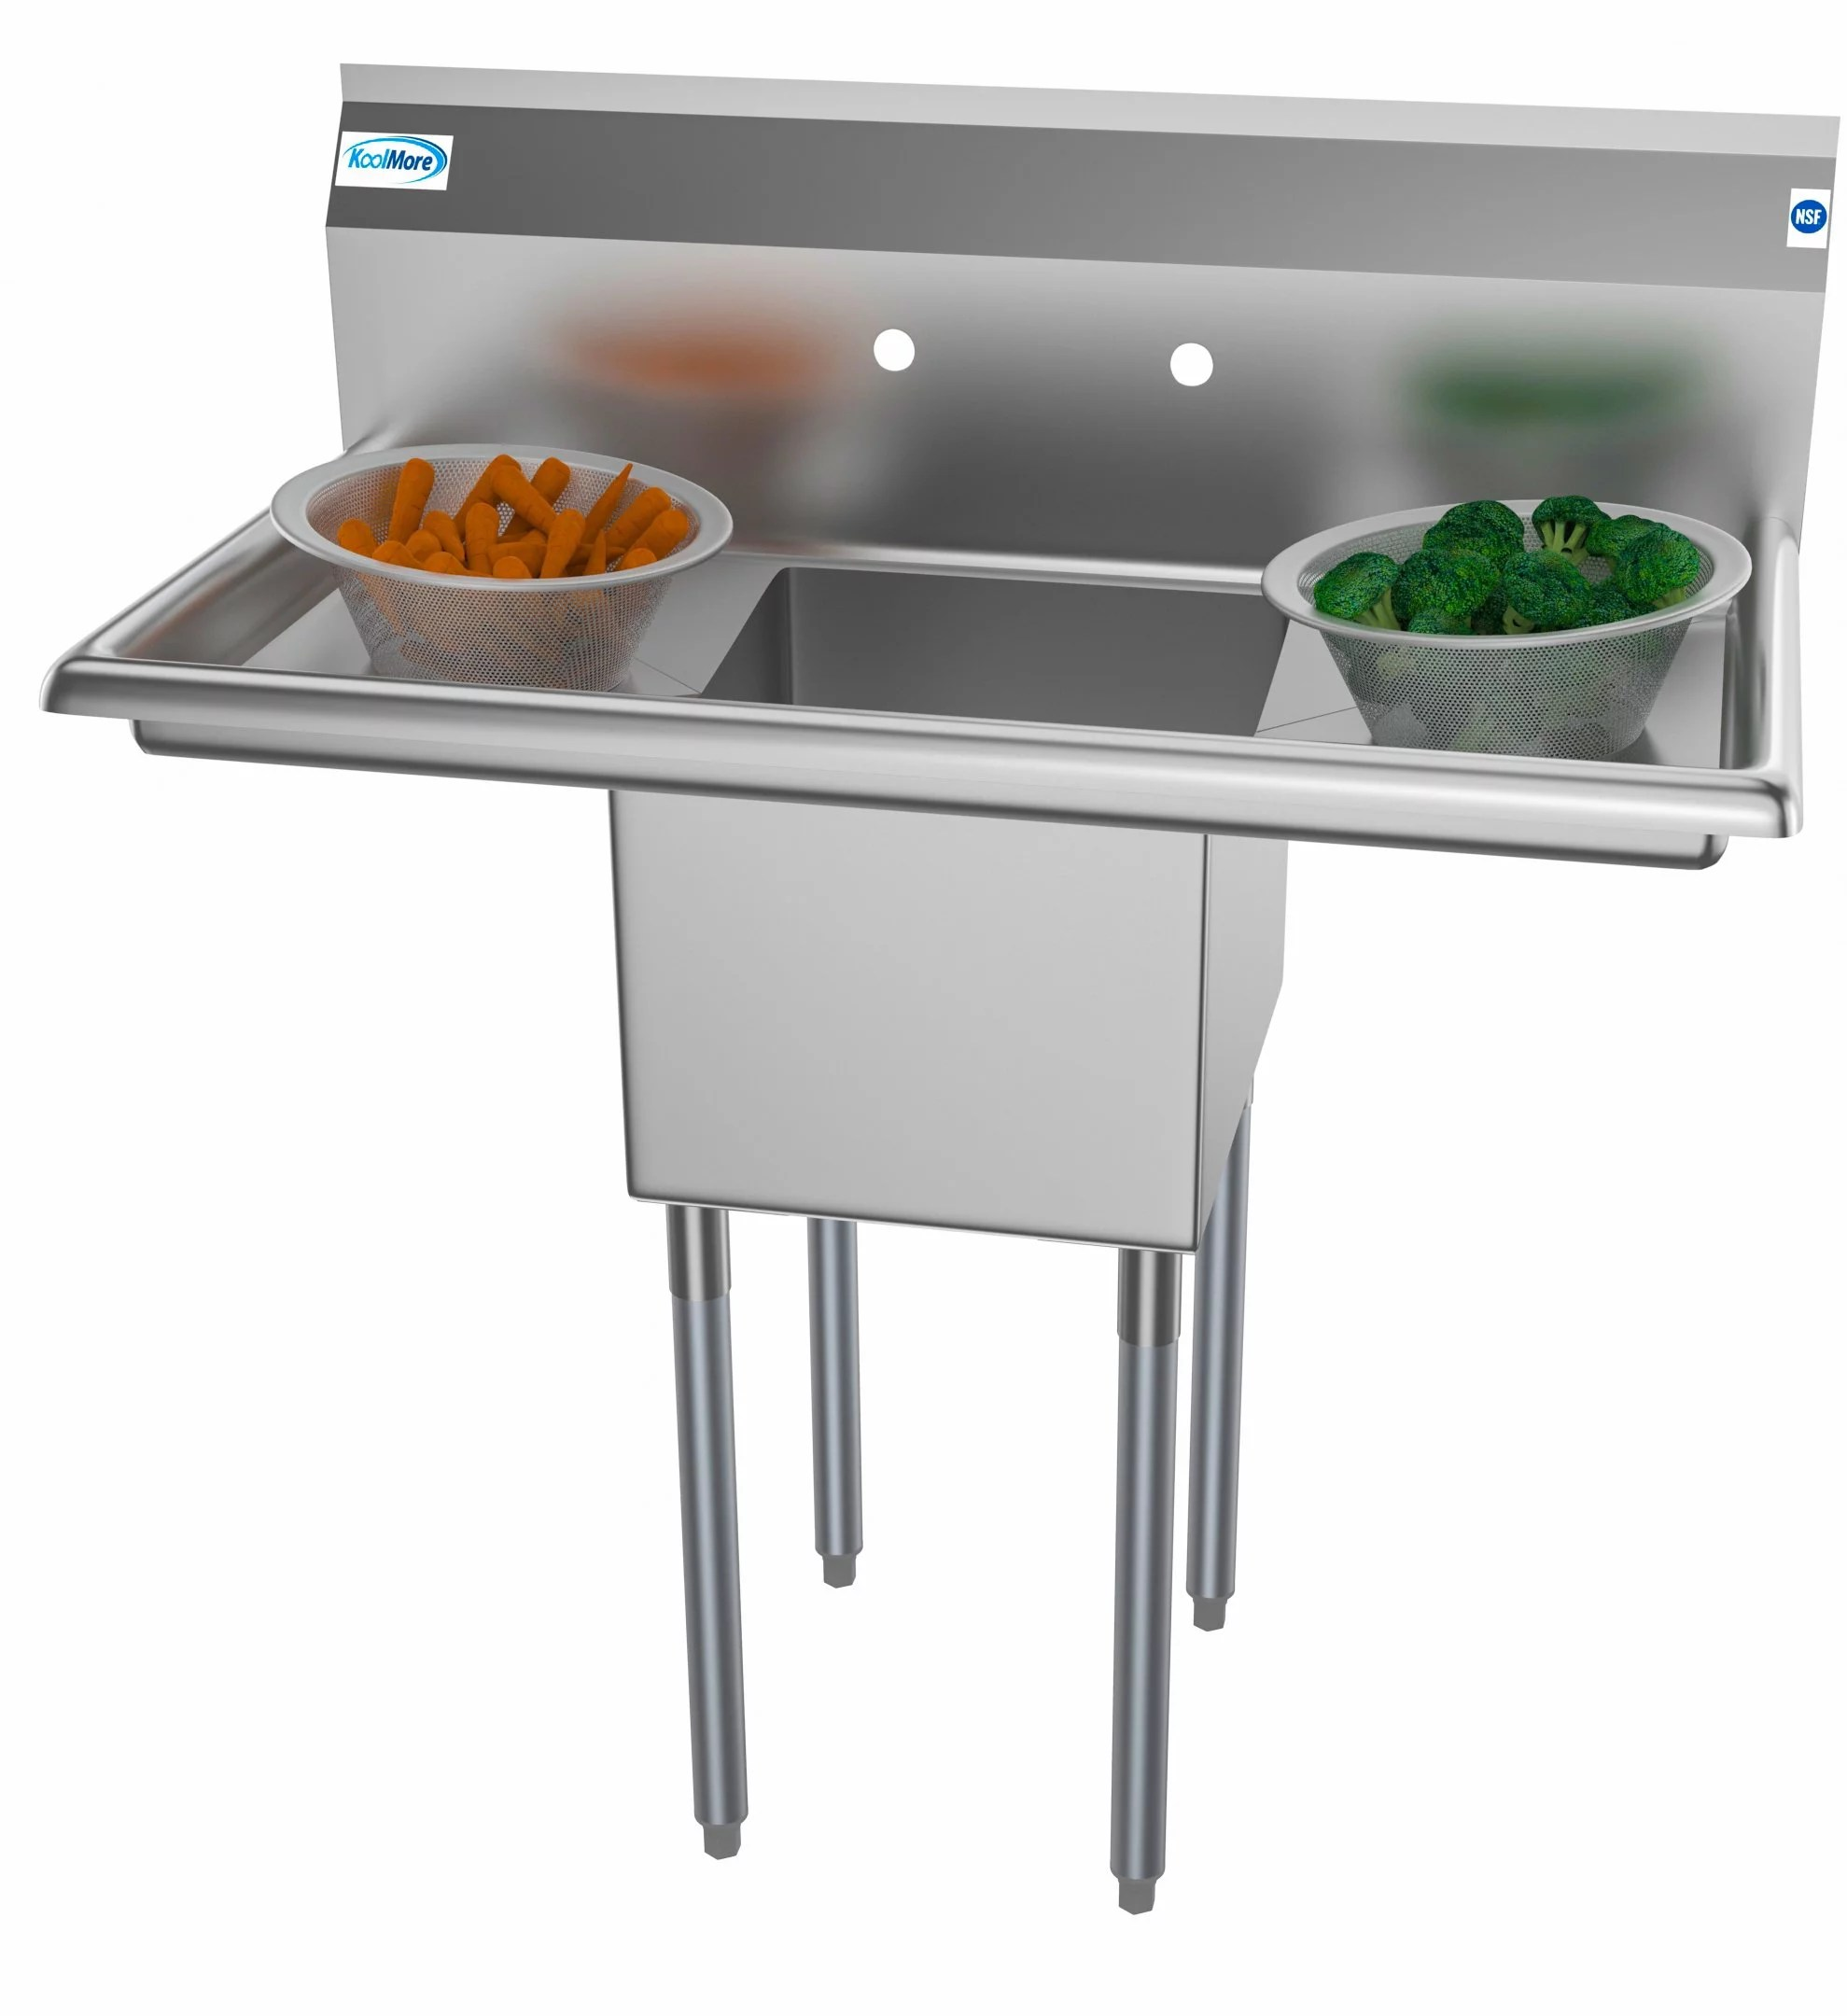 1 compartment 38 stainless steel commercial kitchen prep utility sink with 2 drainboards bowl size 14 x 16 x 11